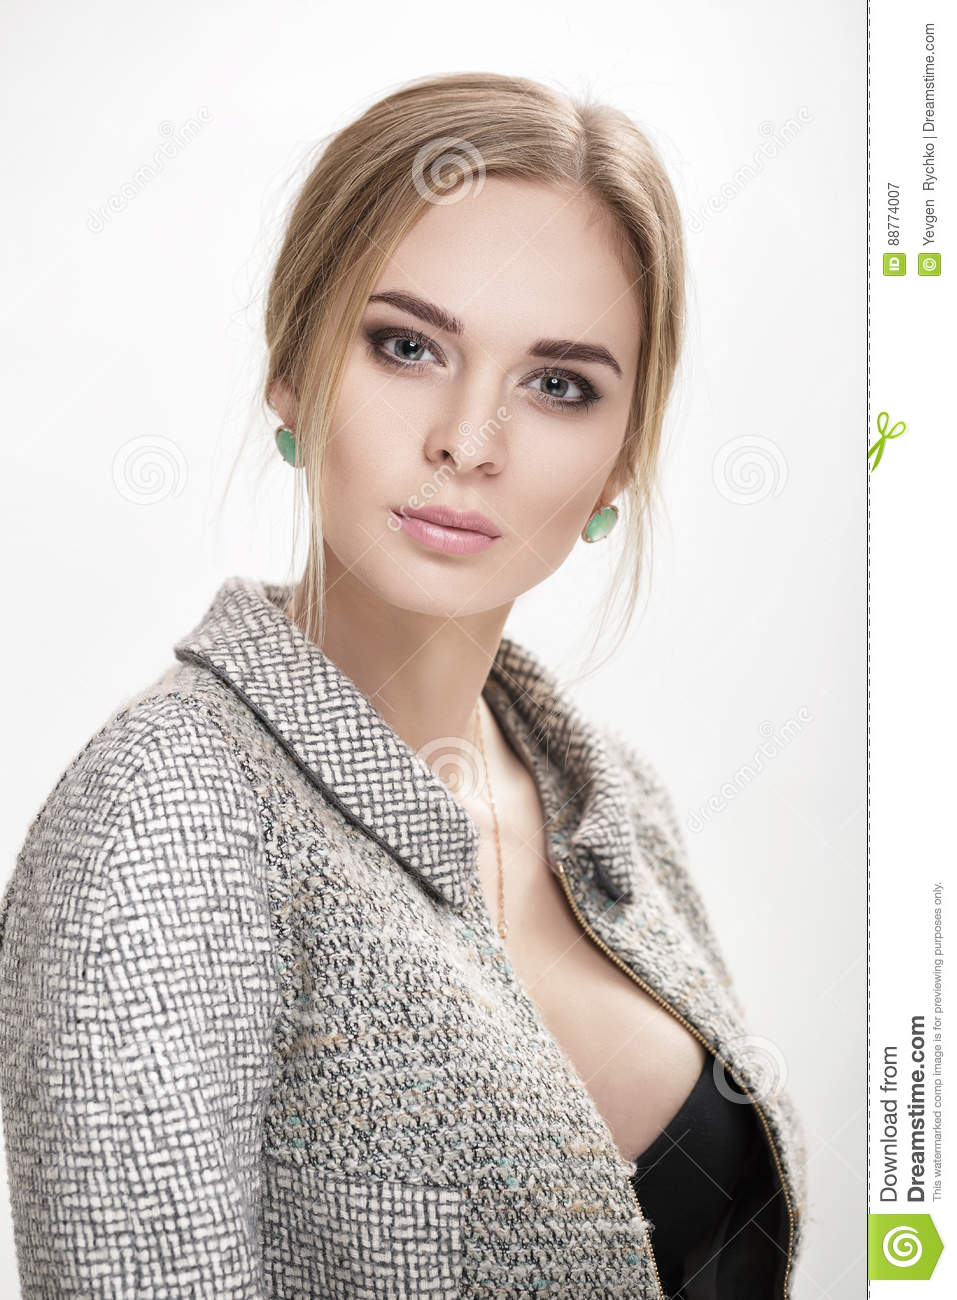 Portrait of beautiful business woman blonde in black dress, jacket on gray background